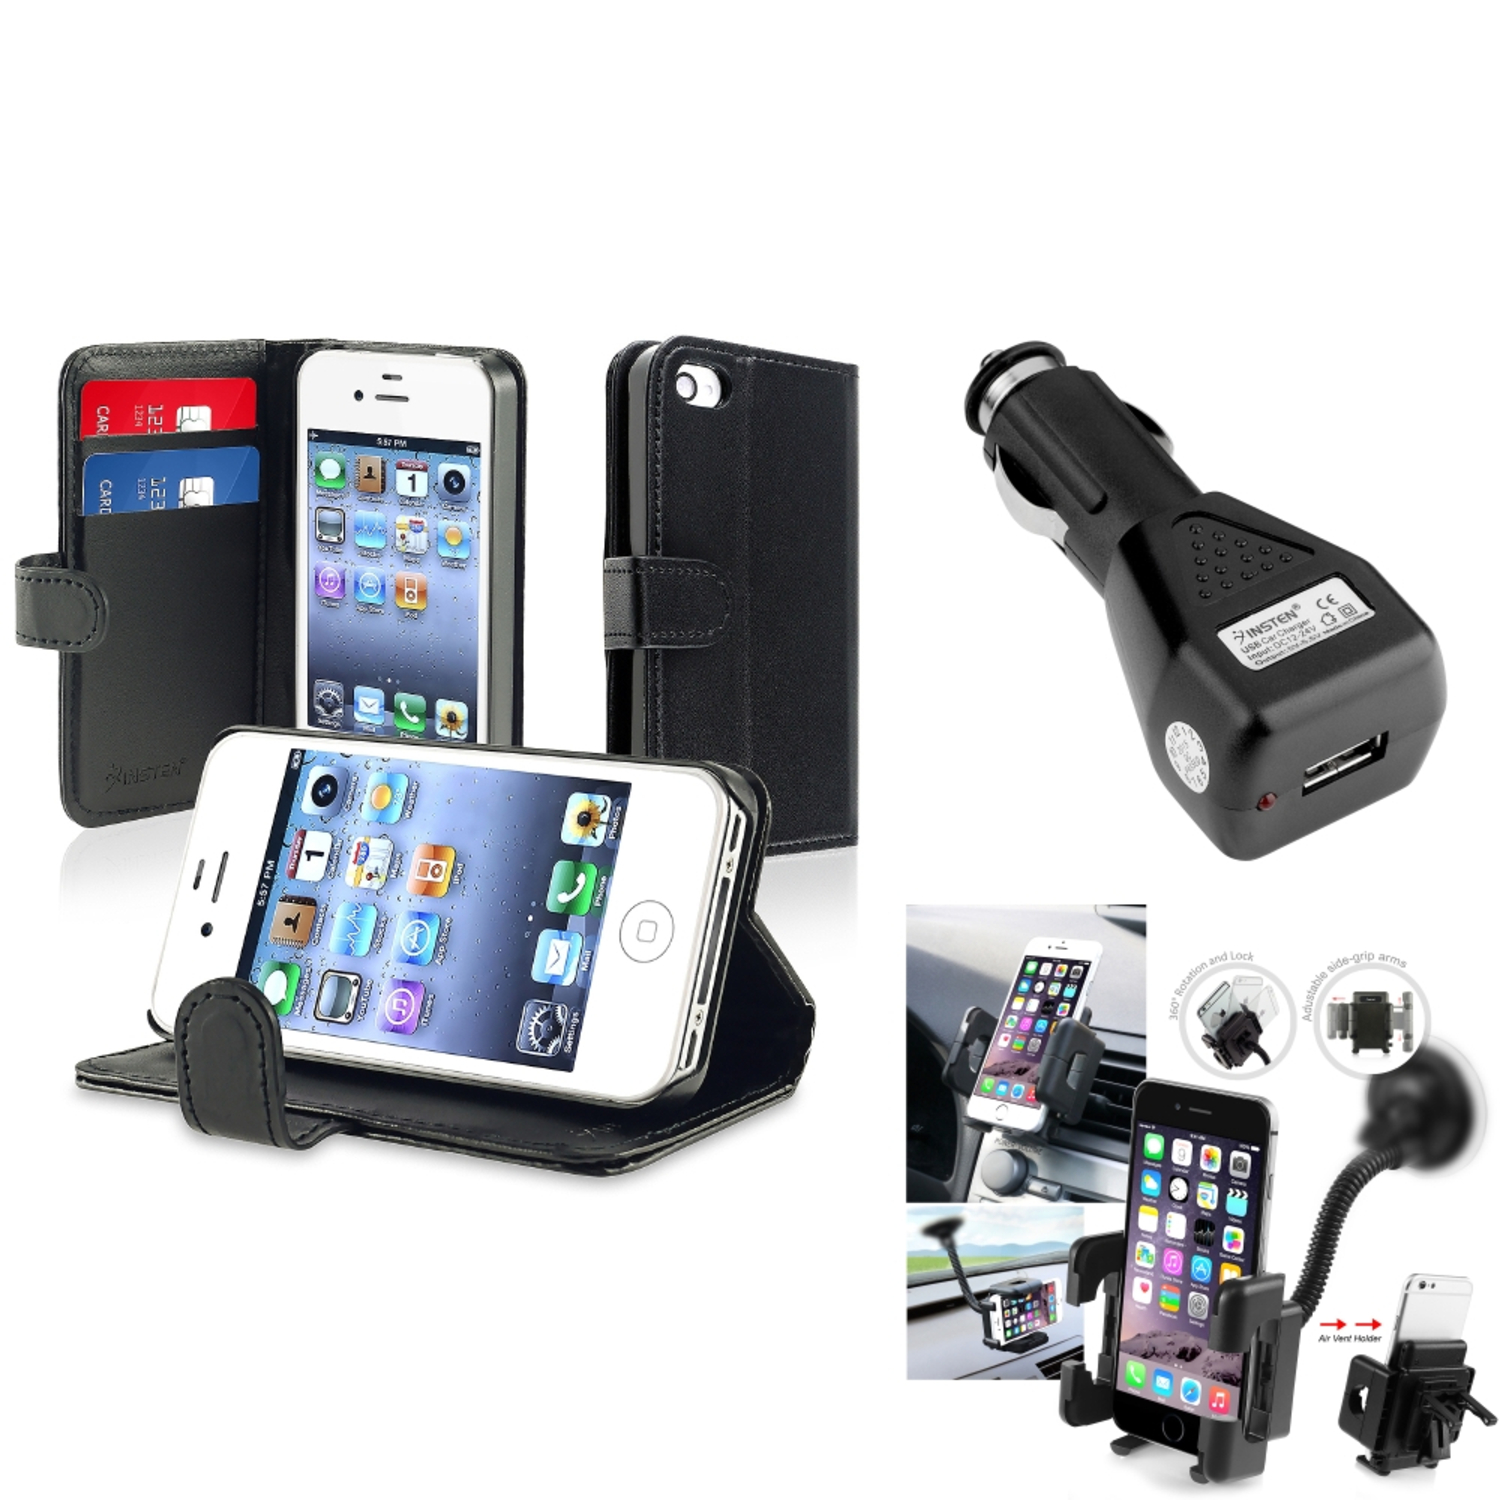 Insten Black Wallet Leather Case Cover Car Holder Charger For iPhone 4 4G 4th 4S